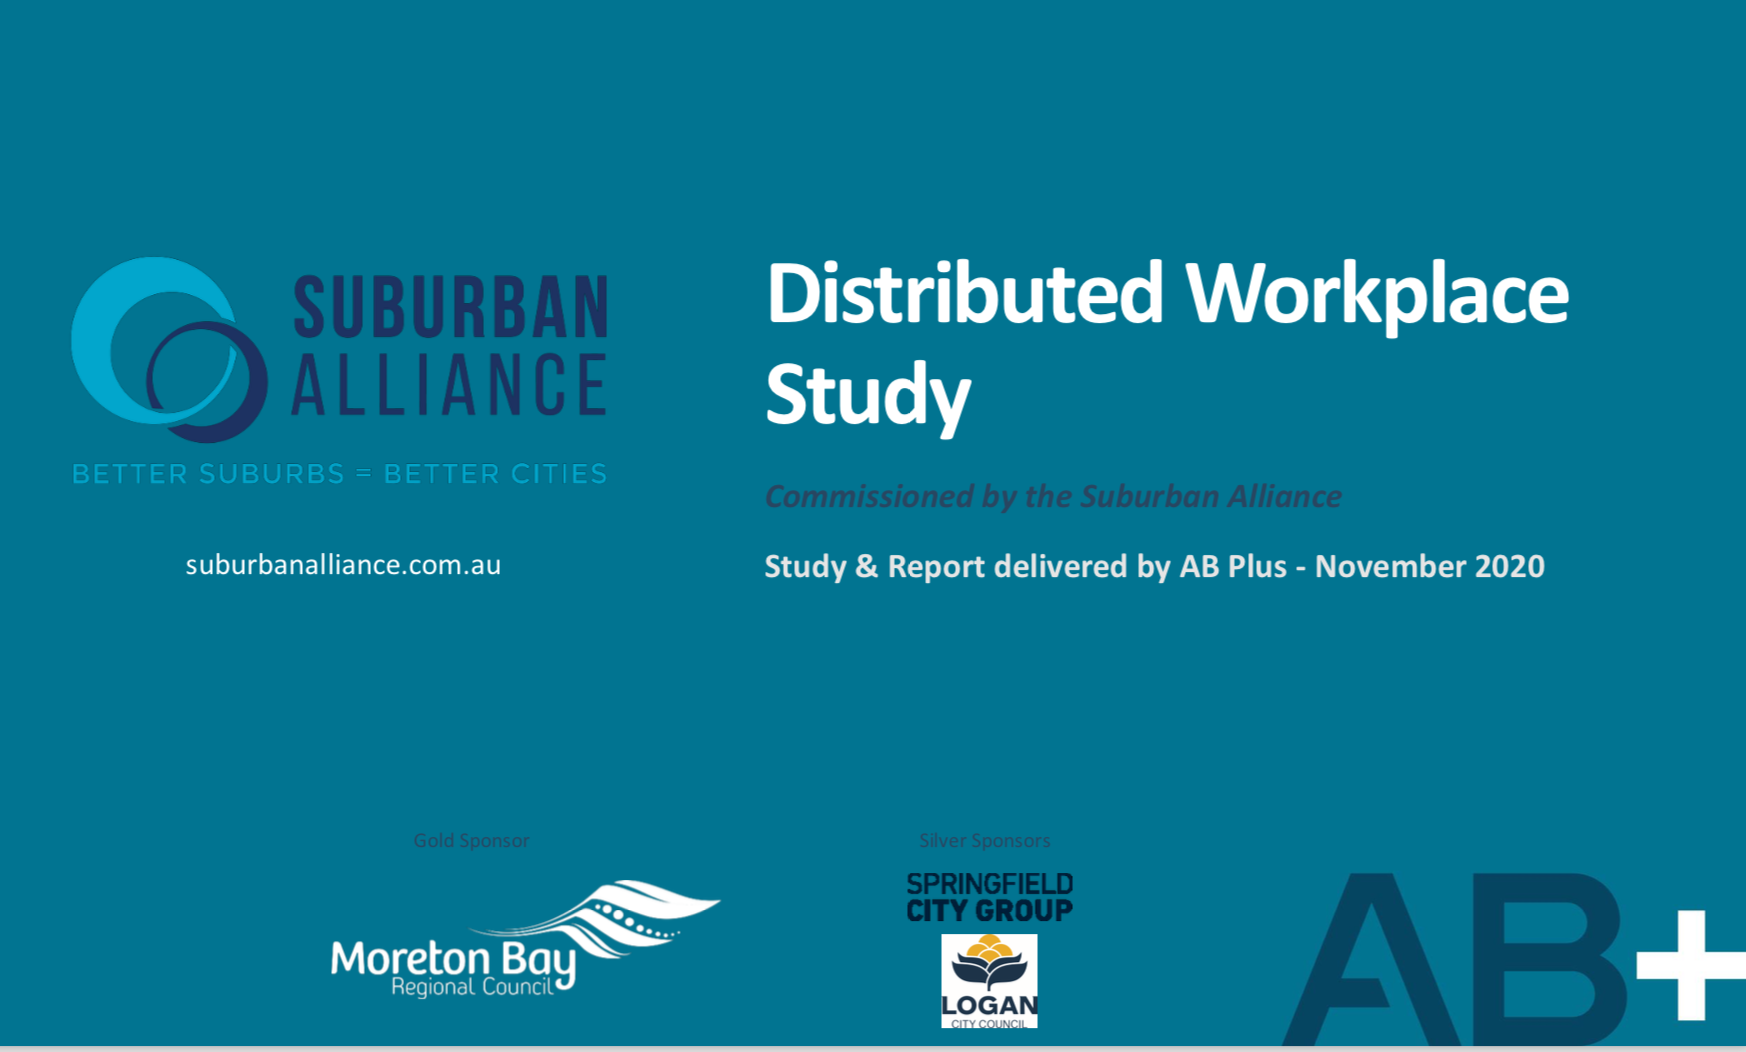 Distributed Workplace Study